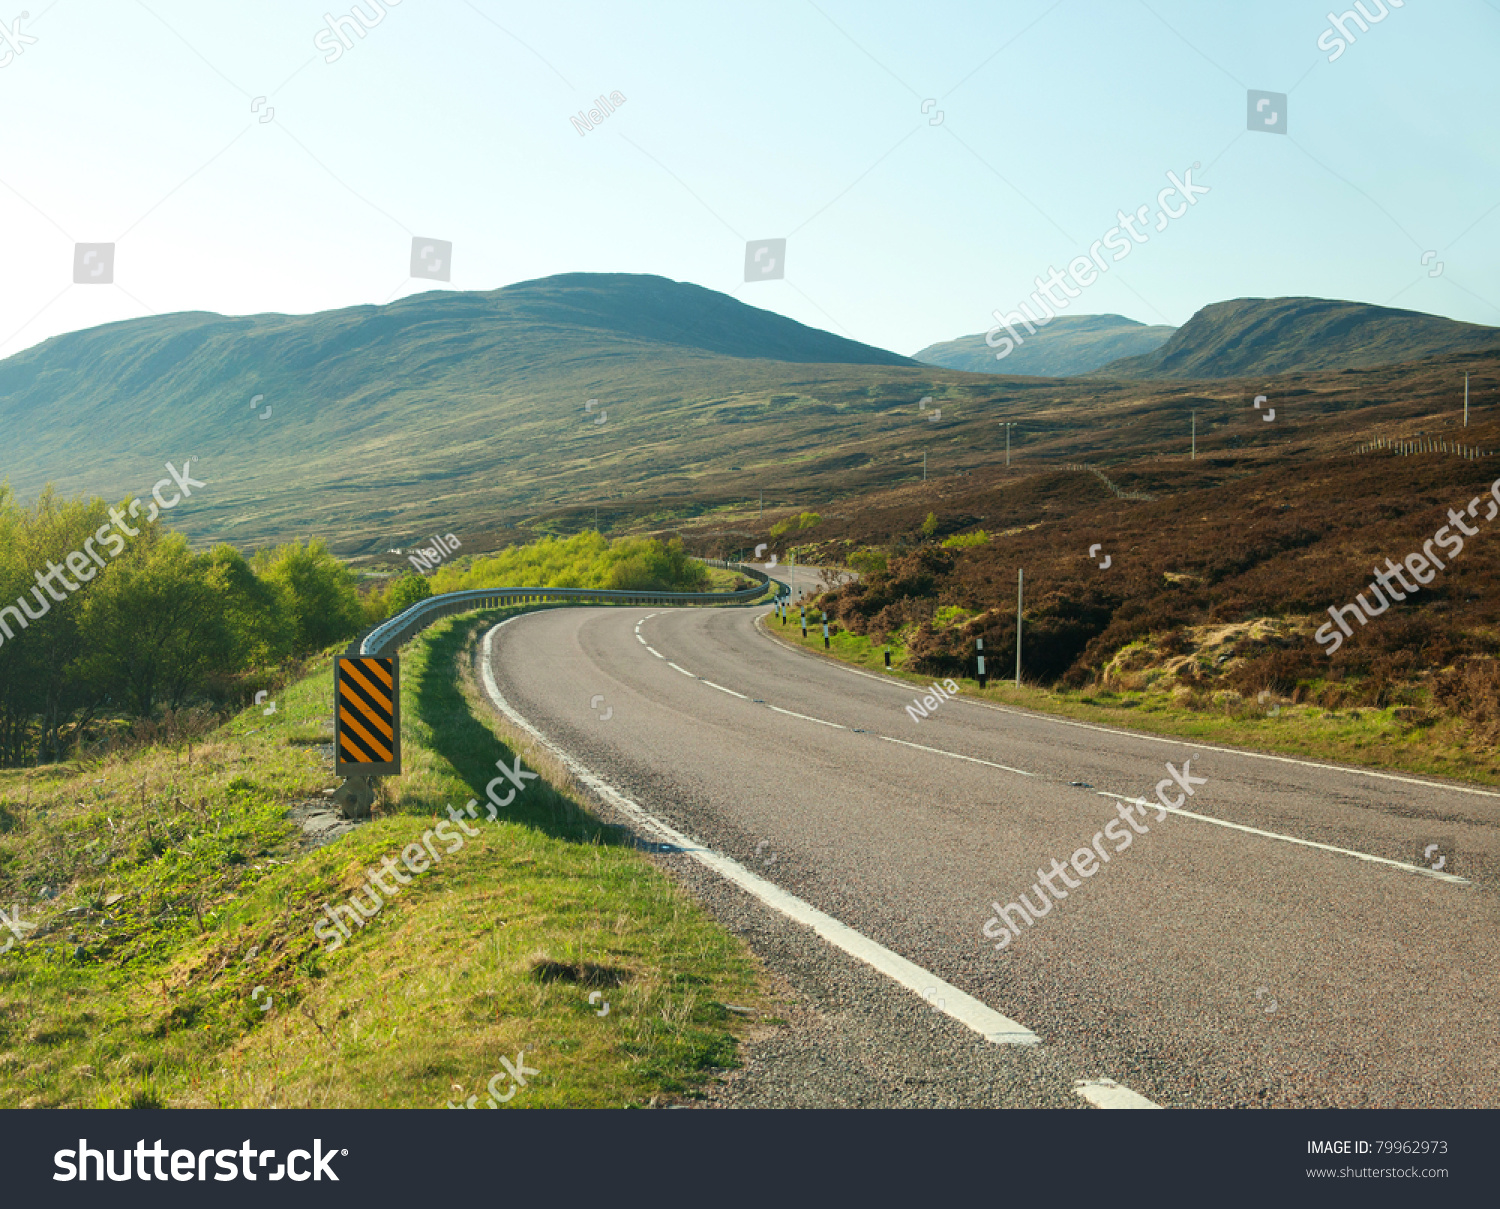 Country Road Winding Through The Scottish Highlands. Uk. Stock Photo 79962973 : Shutterstock